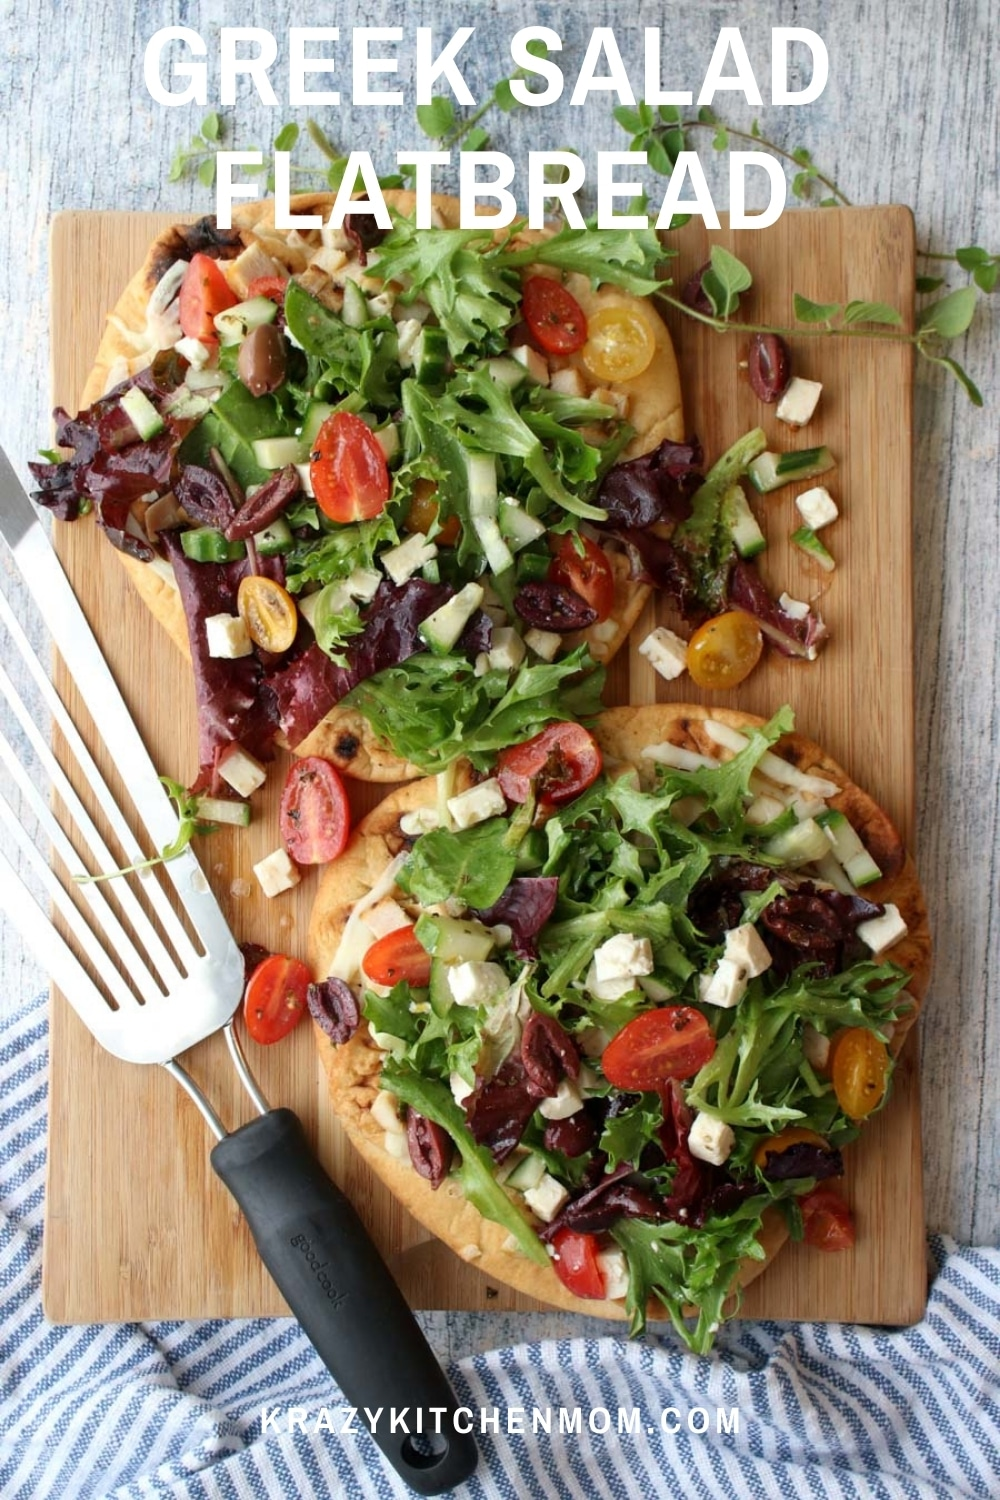 This is the best of both worlds - pizza and salad. A bright flavor-packed Greek salad on top of a flatbread covered in melted cheese and diced chicken. via @krazykitchenmom